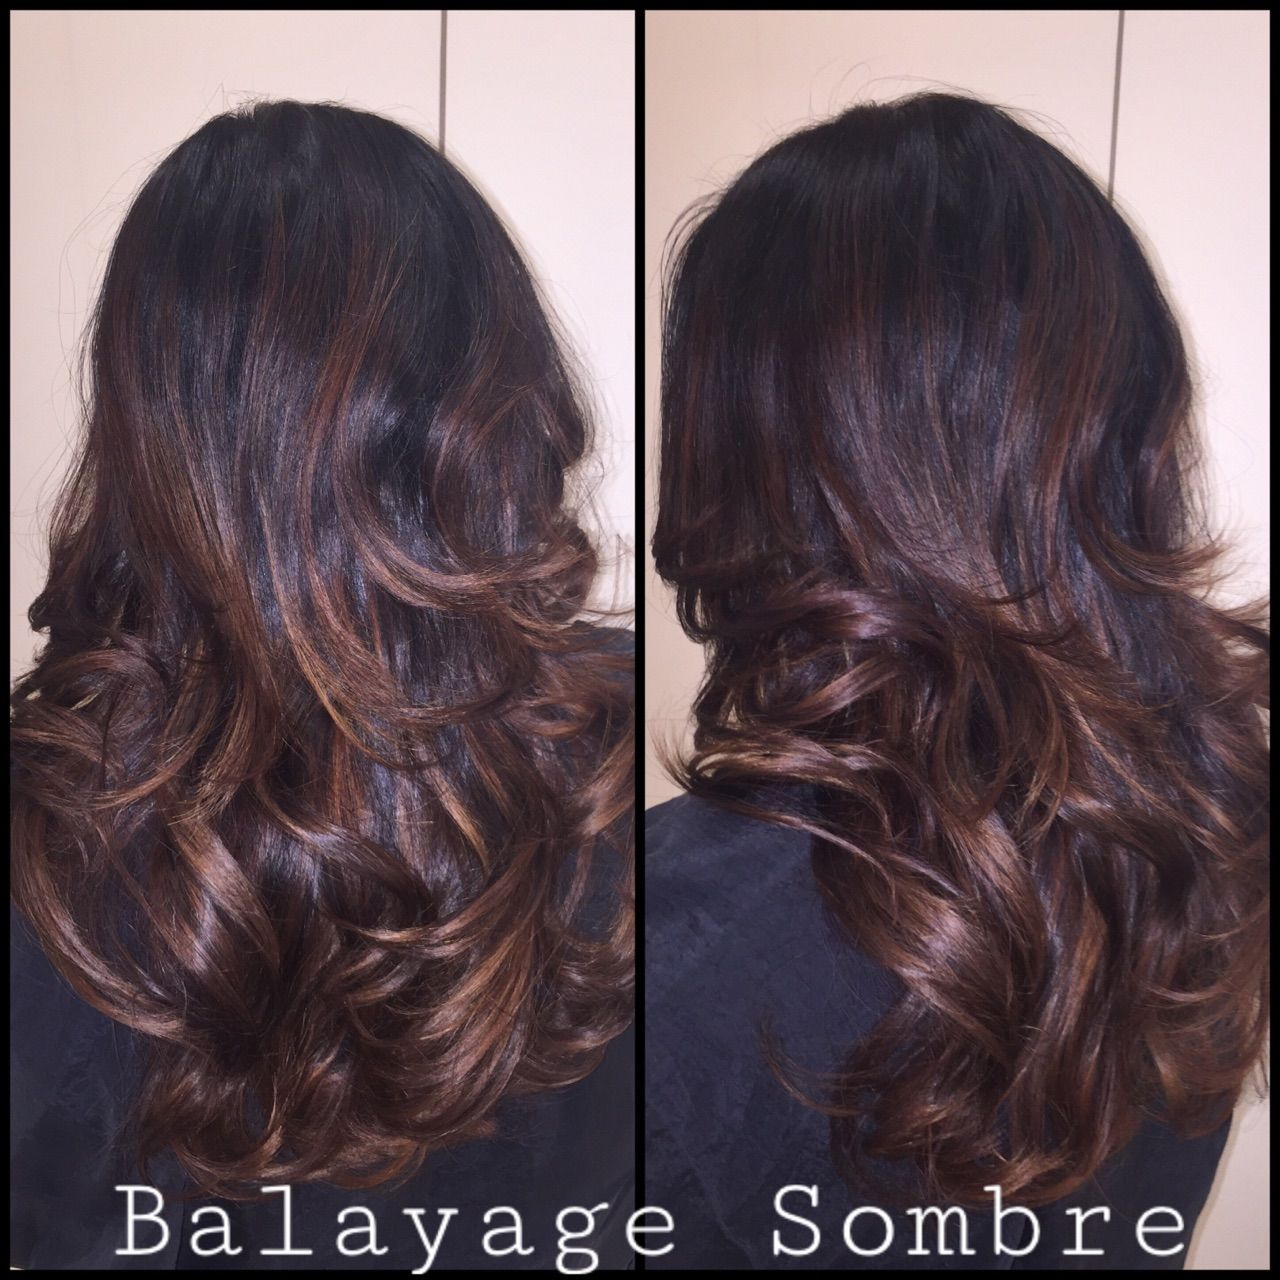 Natural Balyage Jcpenney Hair Salon Jcpenney Hair Salon Hair Beauty Natural Balyage